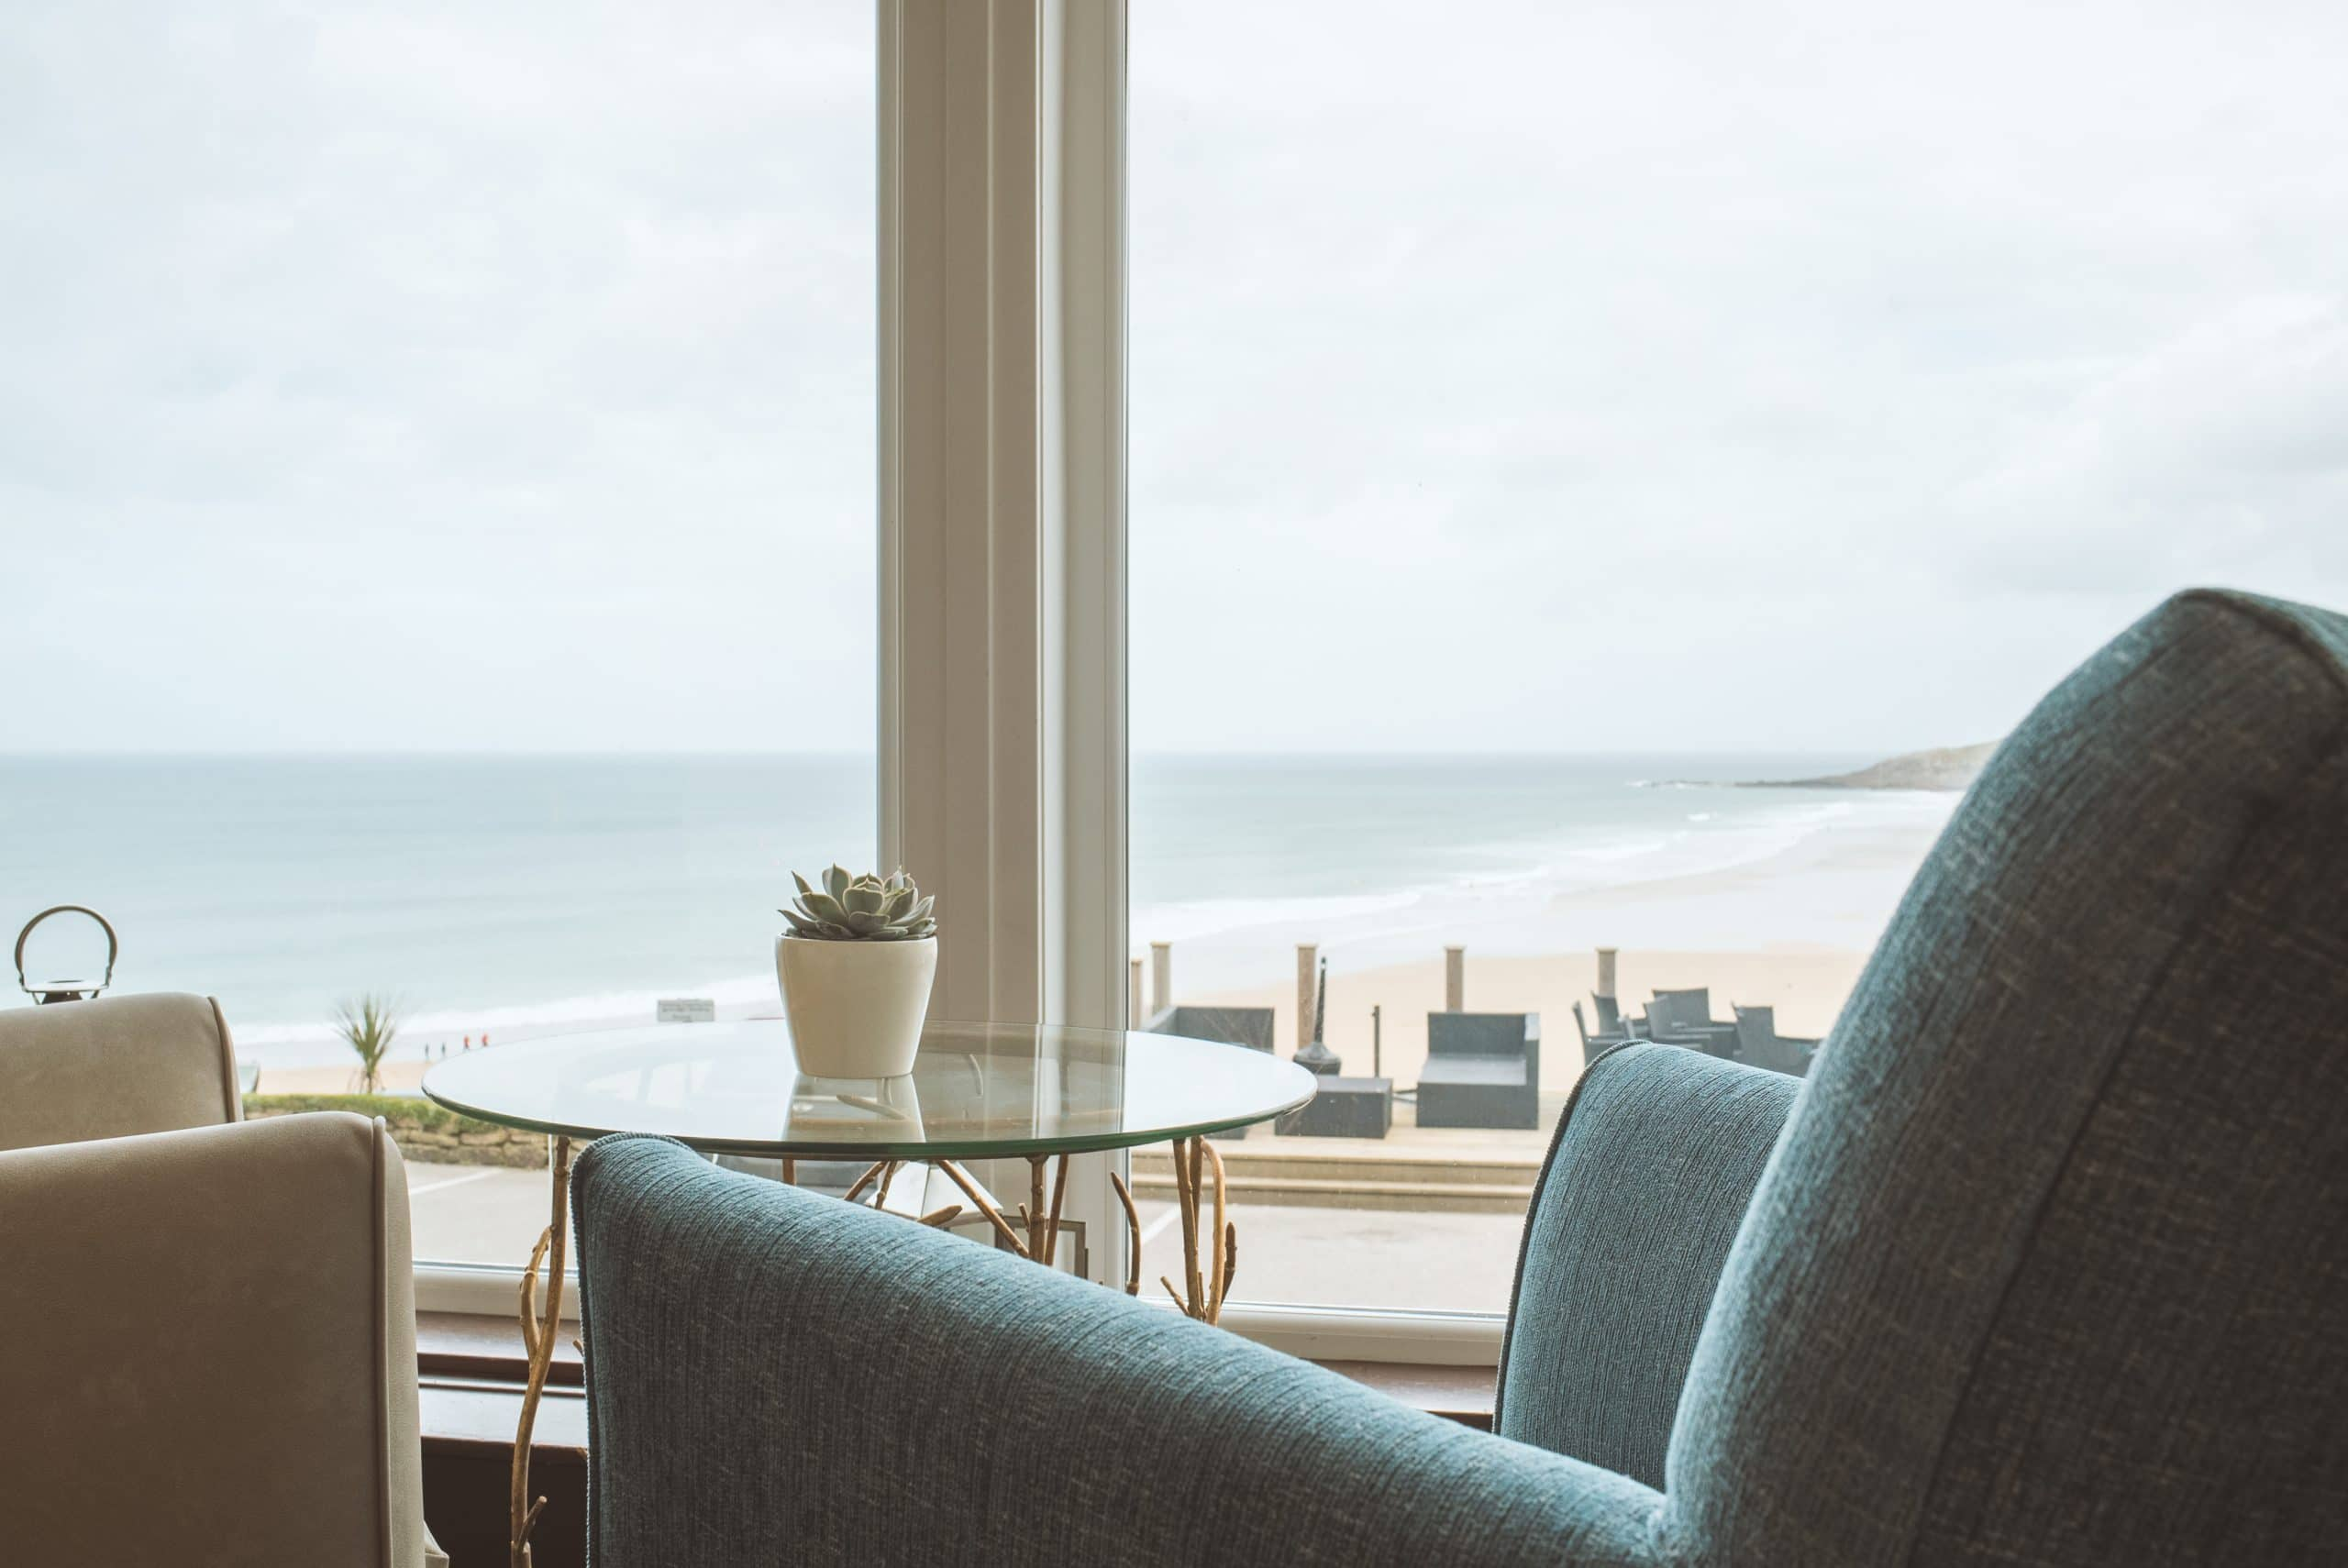 Fistral Beach Hotel Bay Bar Refurb